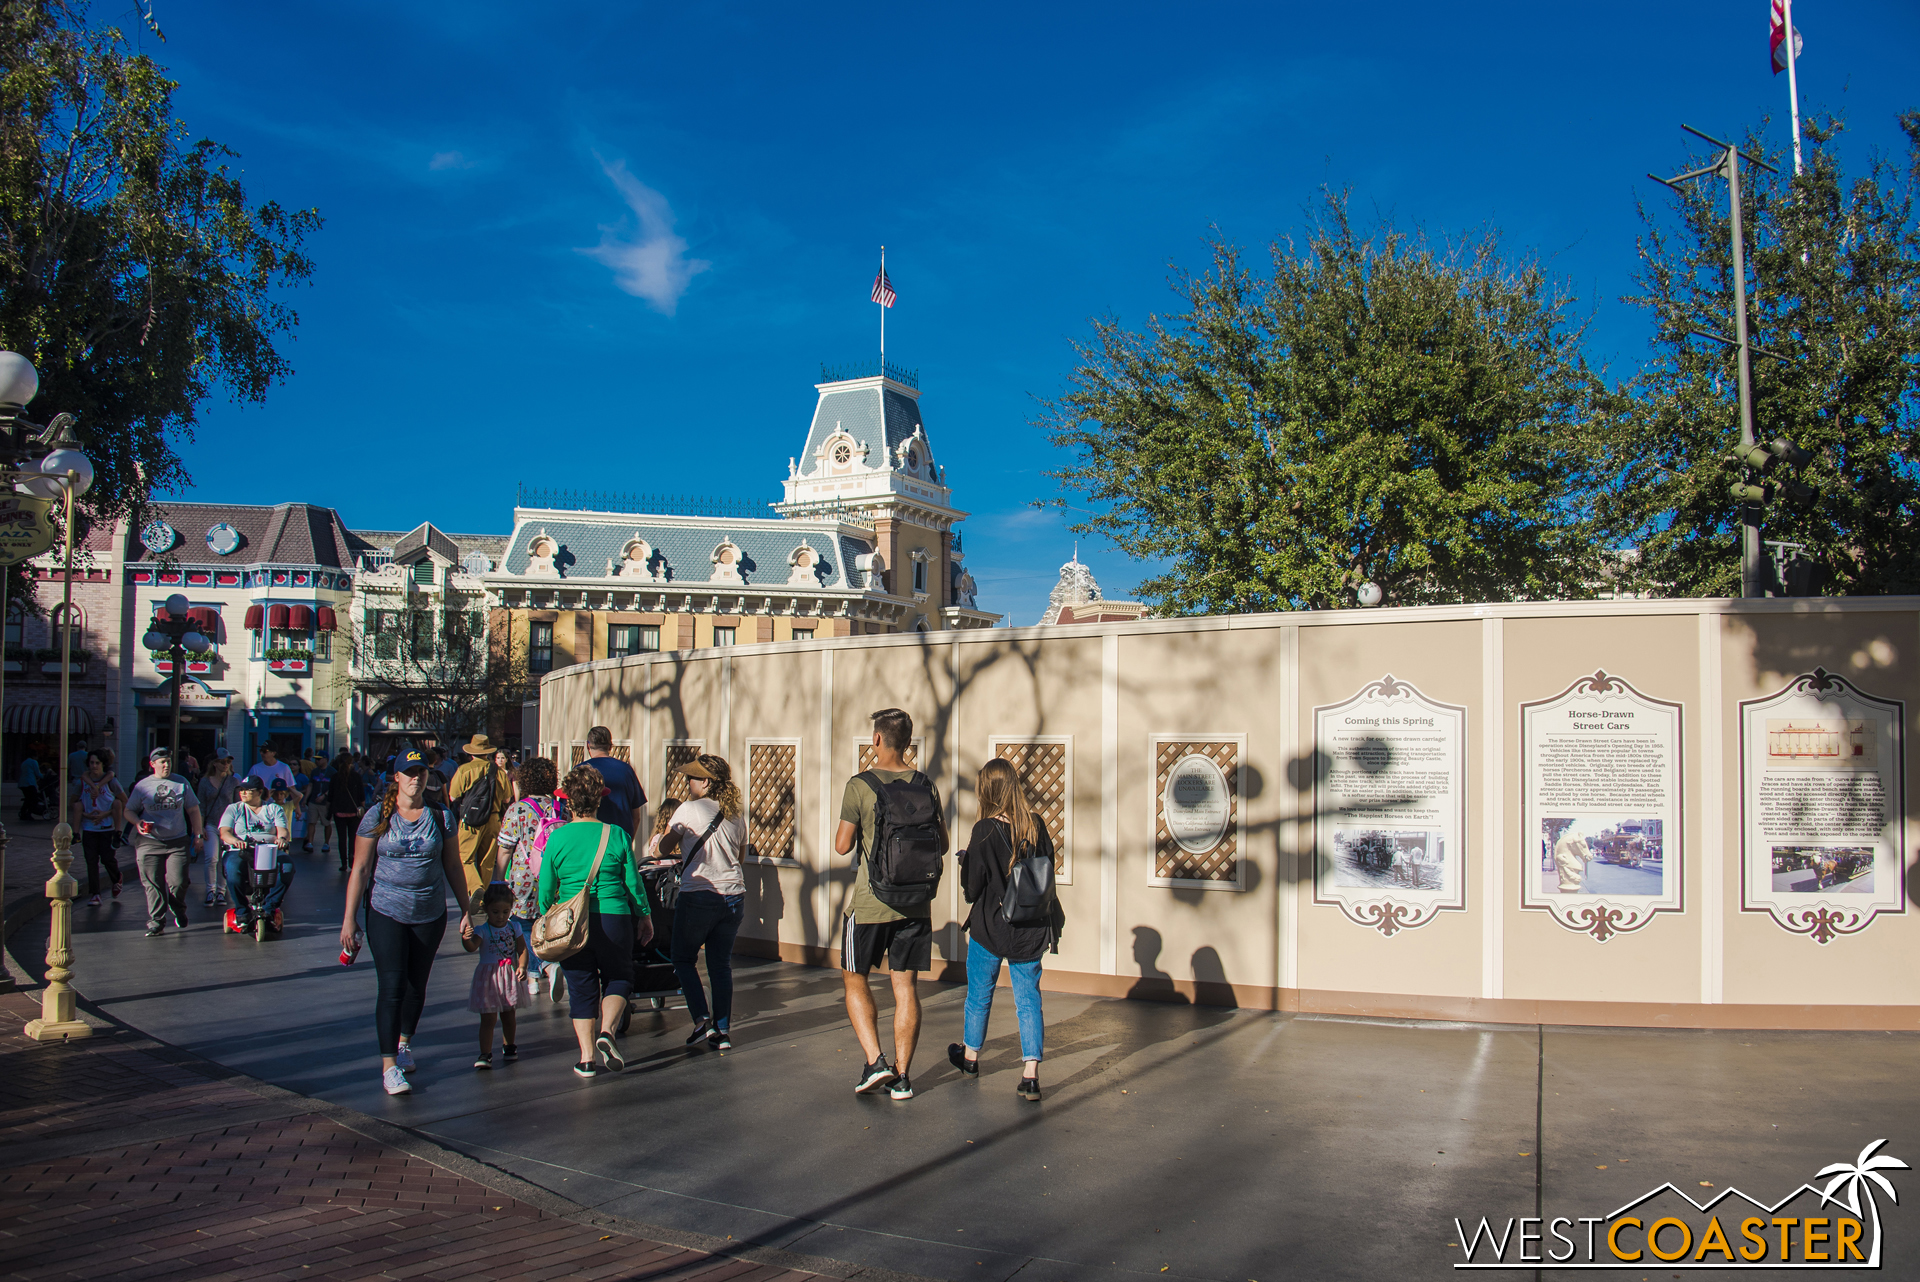 It was pretty dark when I made it to Main Street last week. Here are some daytime photos of the construction!